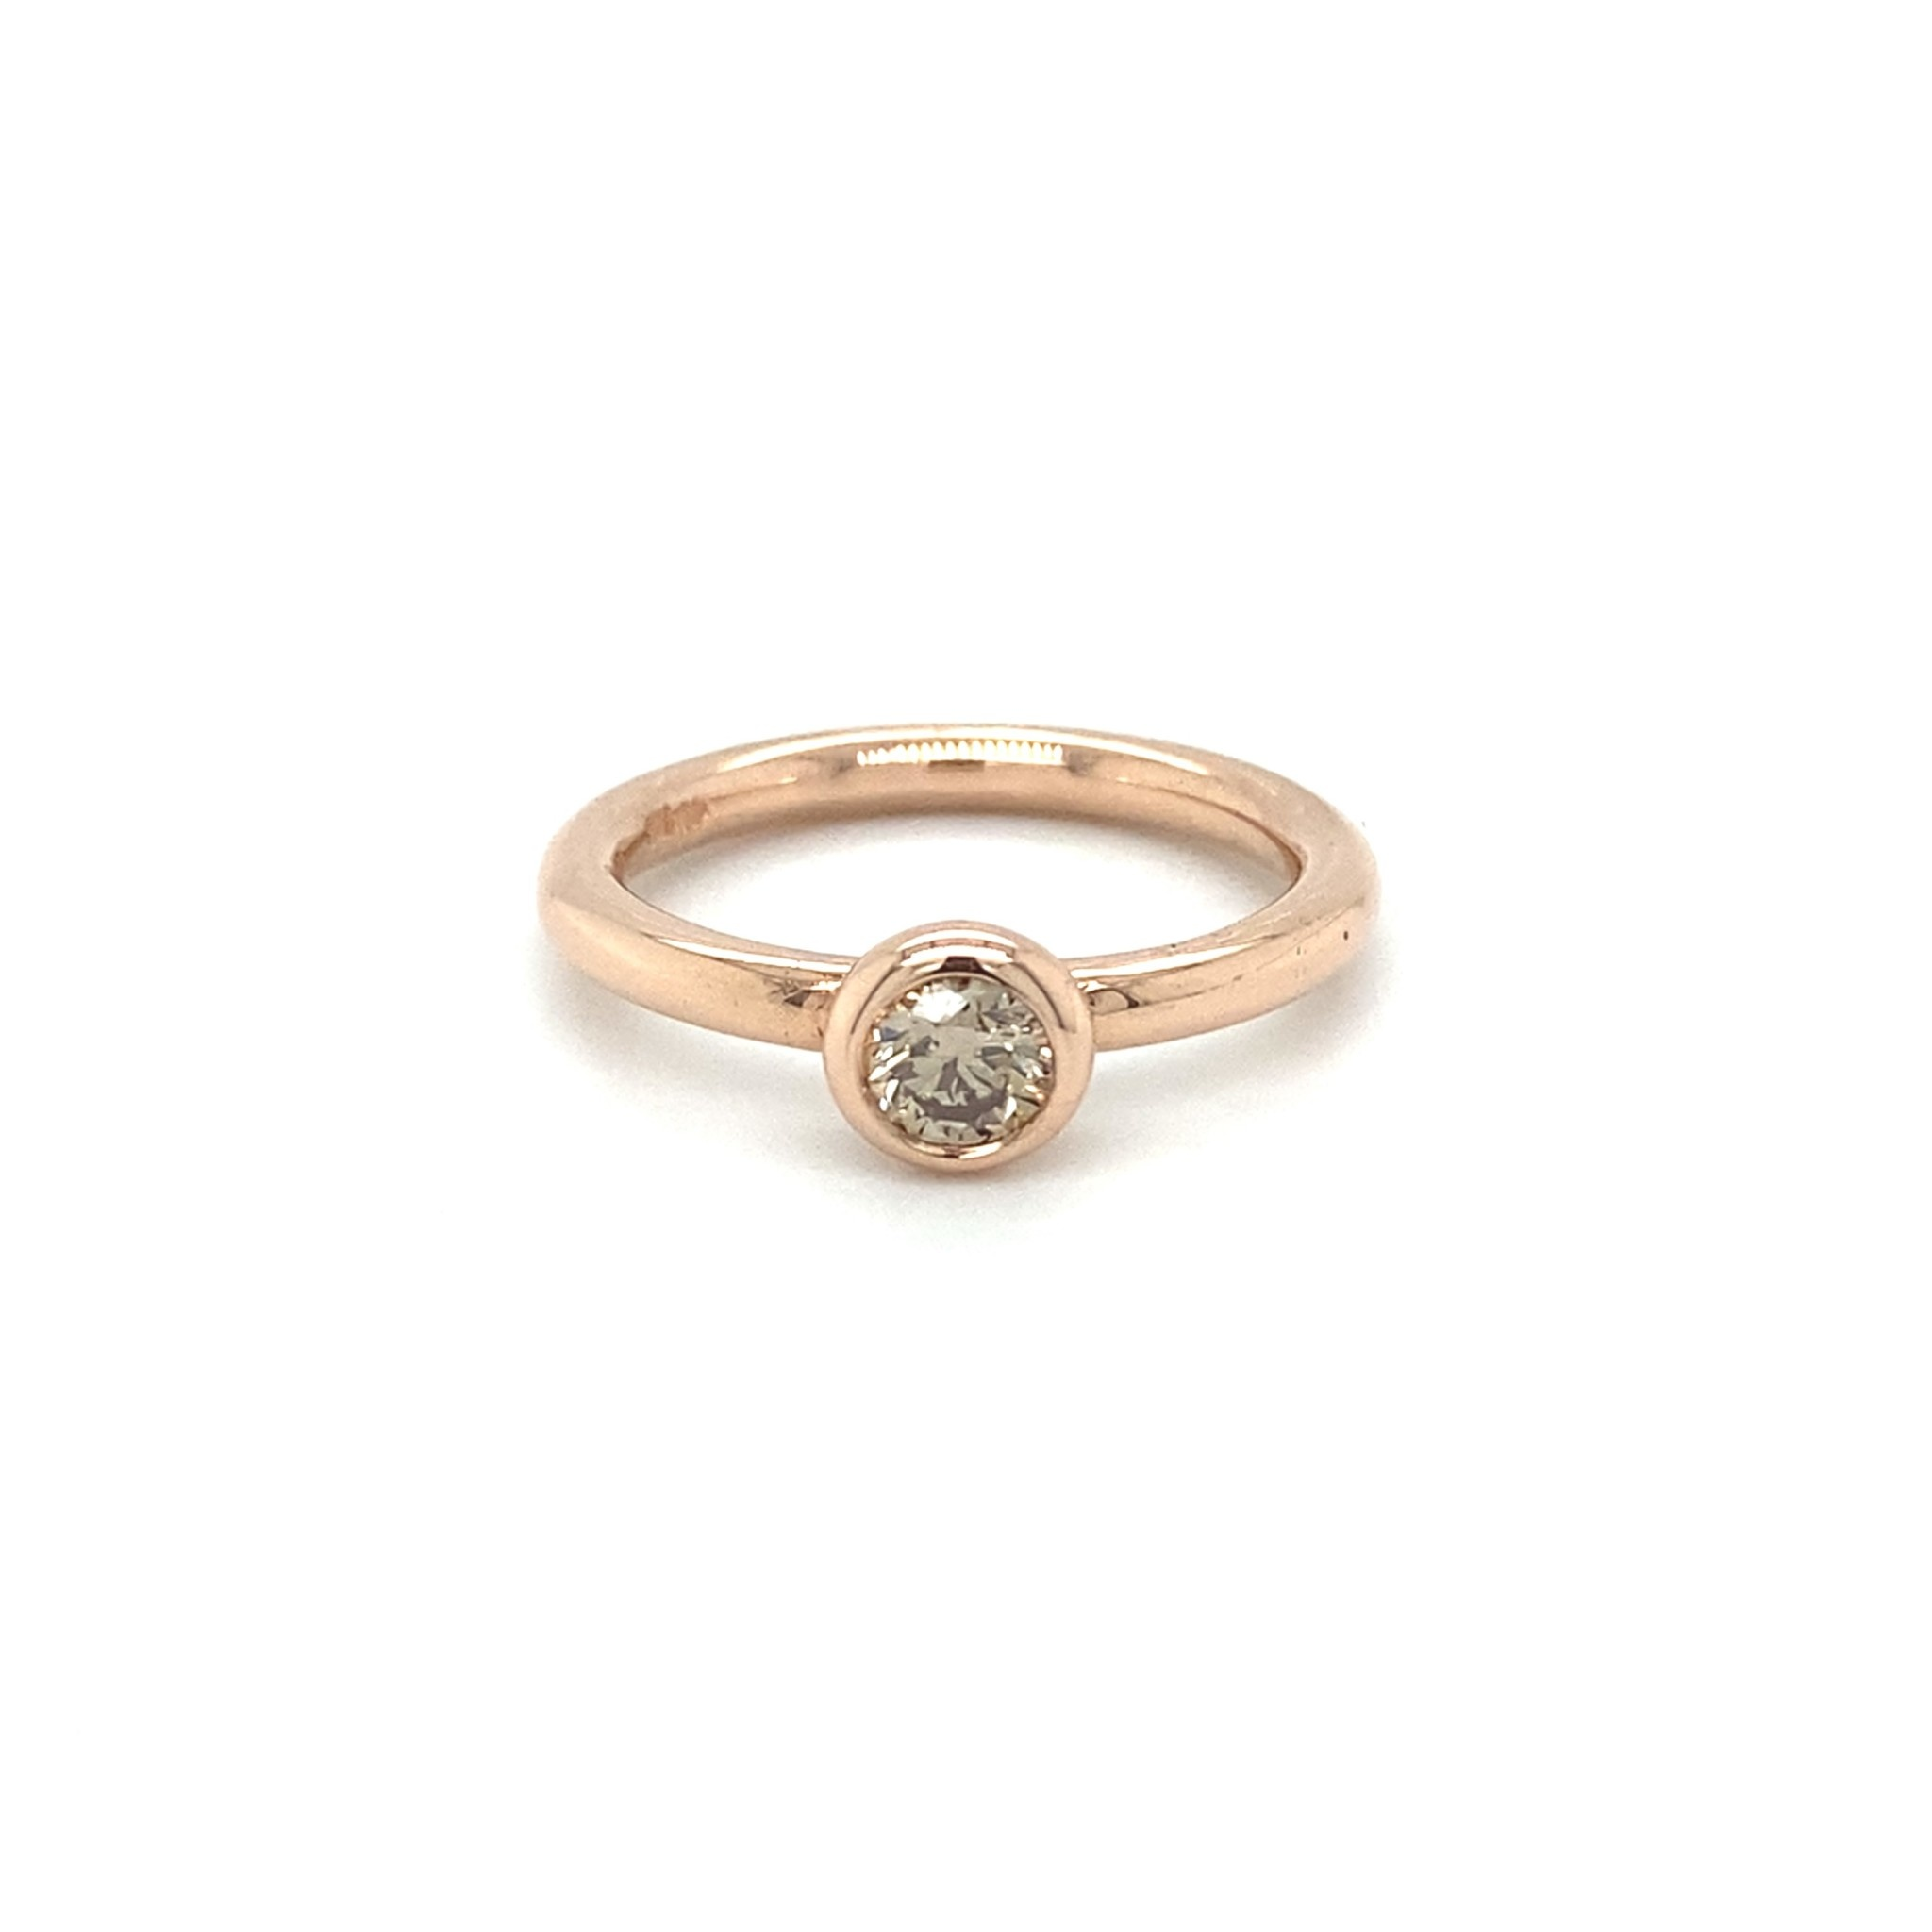 ROEMER ROEMER roségouden ring met diamant VS 0.34ct